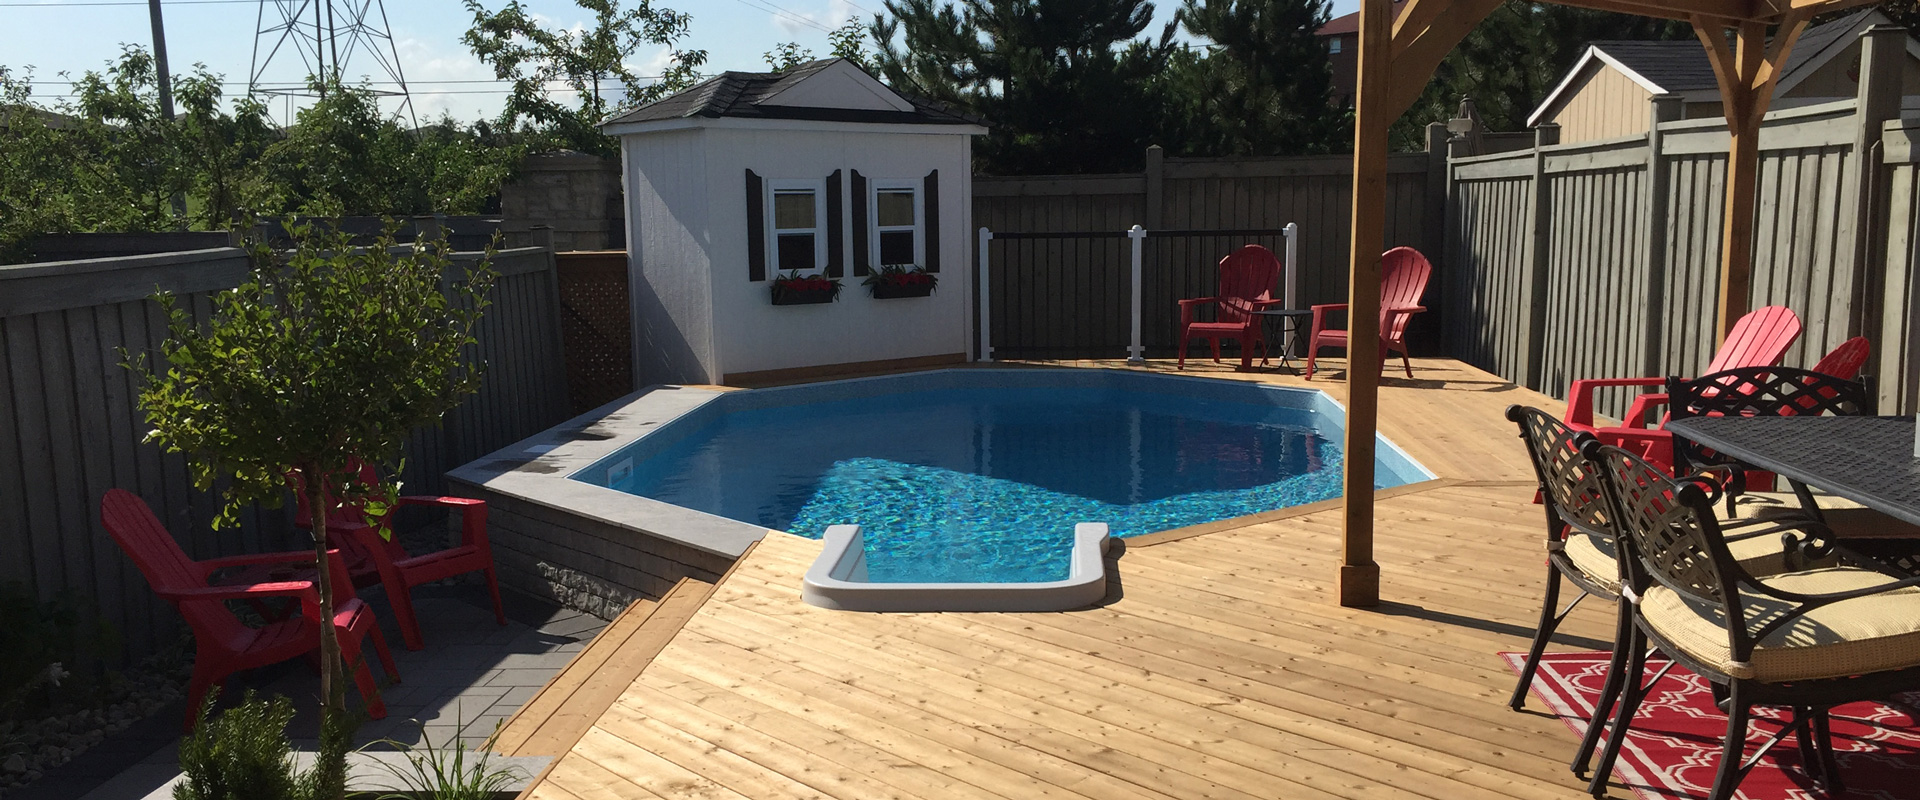 The Russells Onground Pool Showcase Pioneer Family Pools